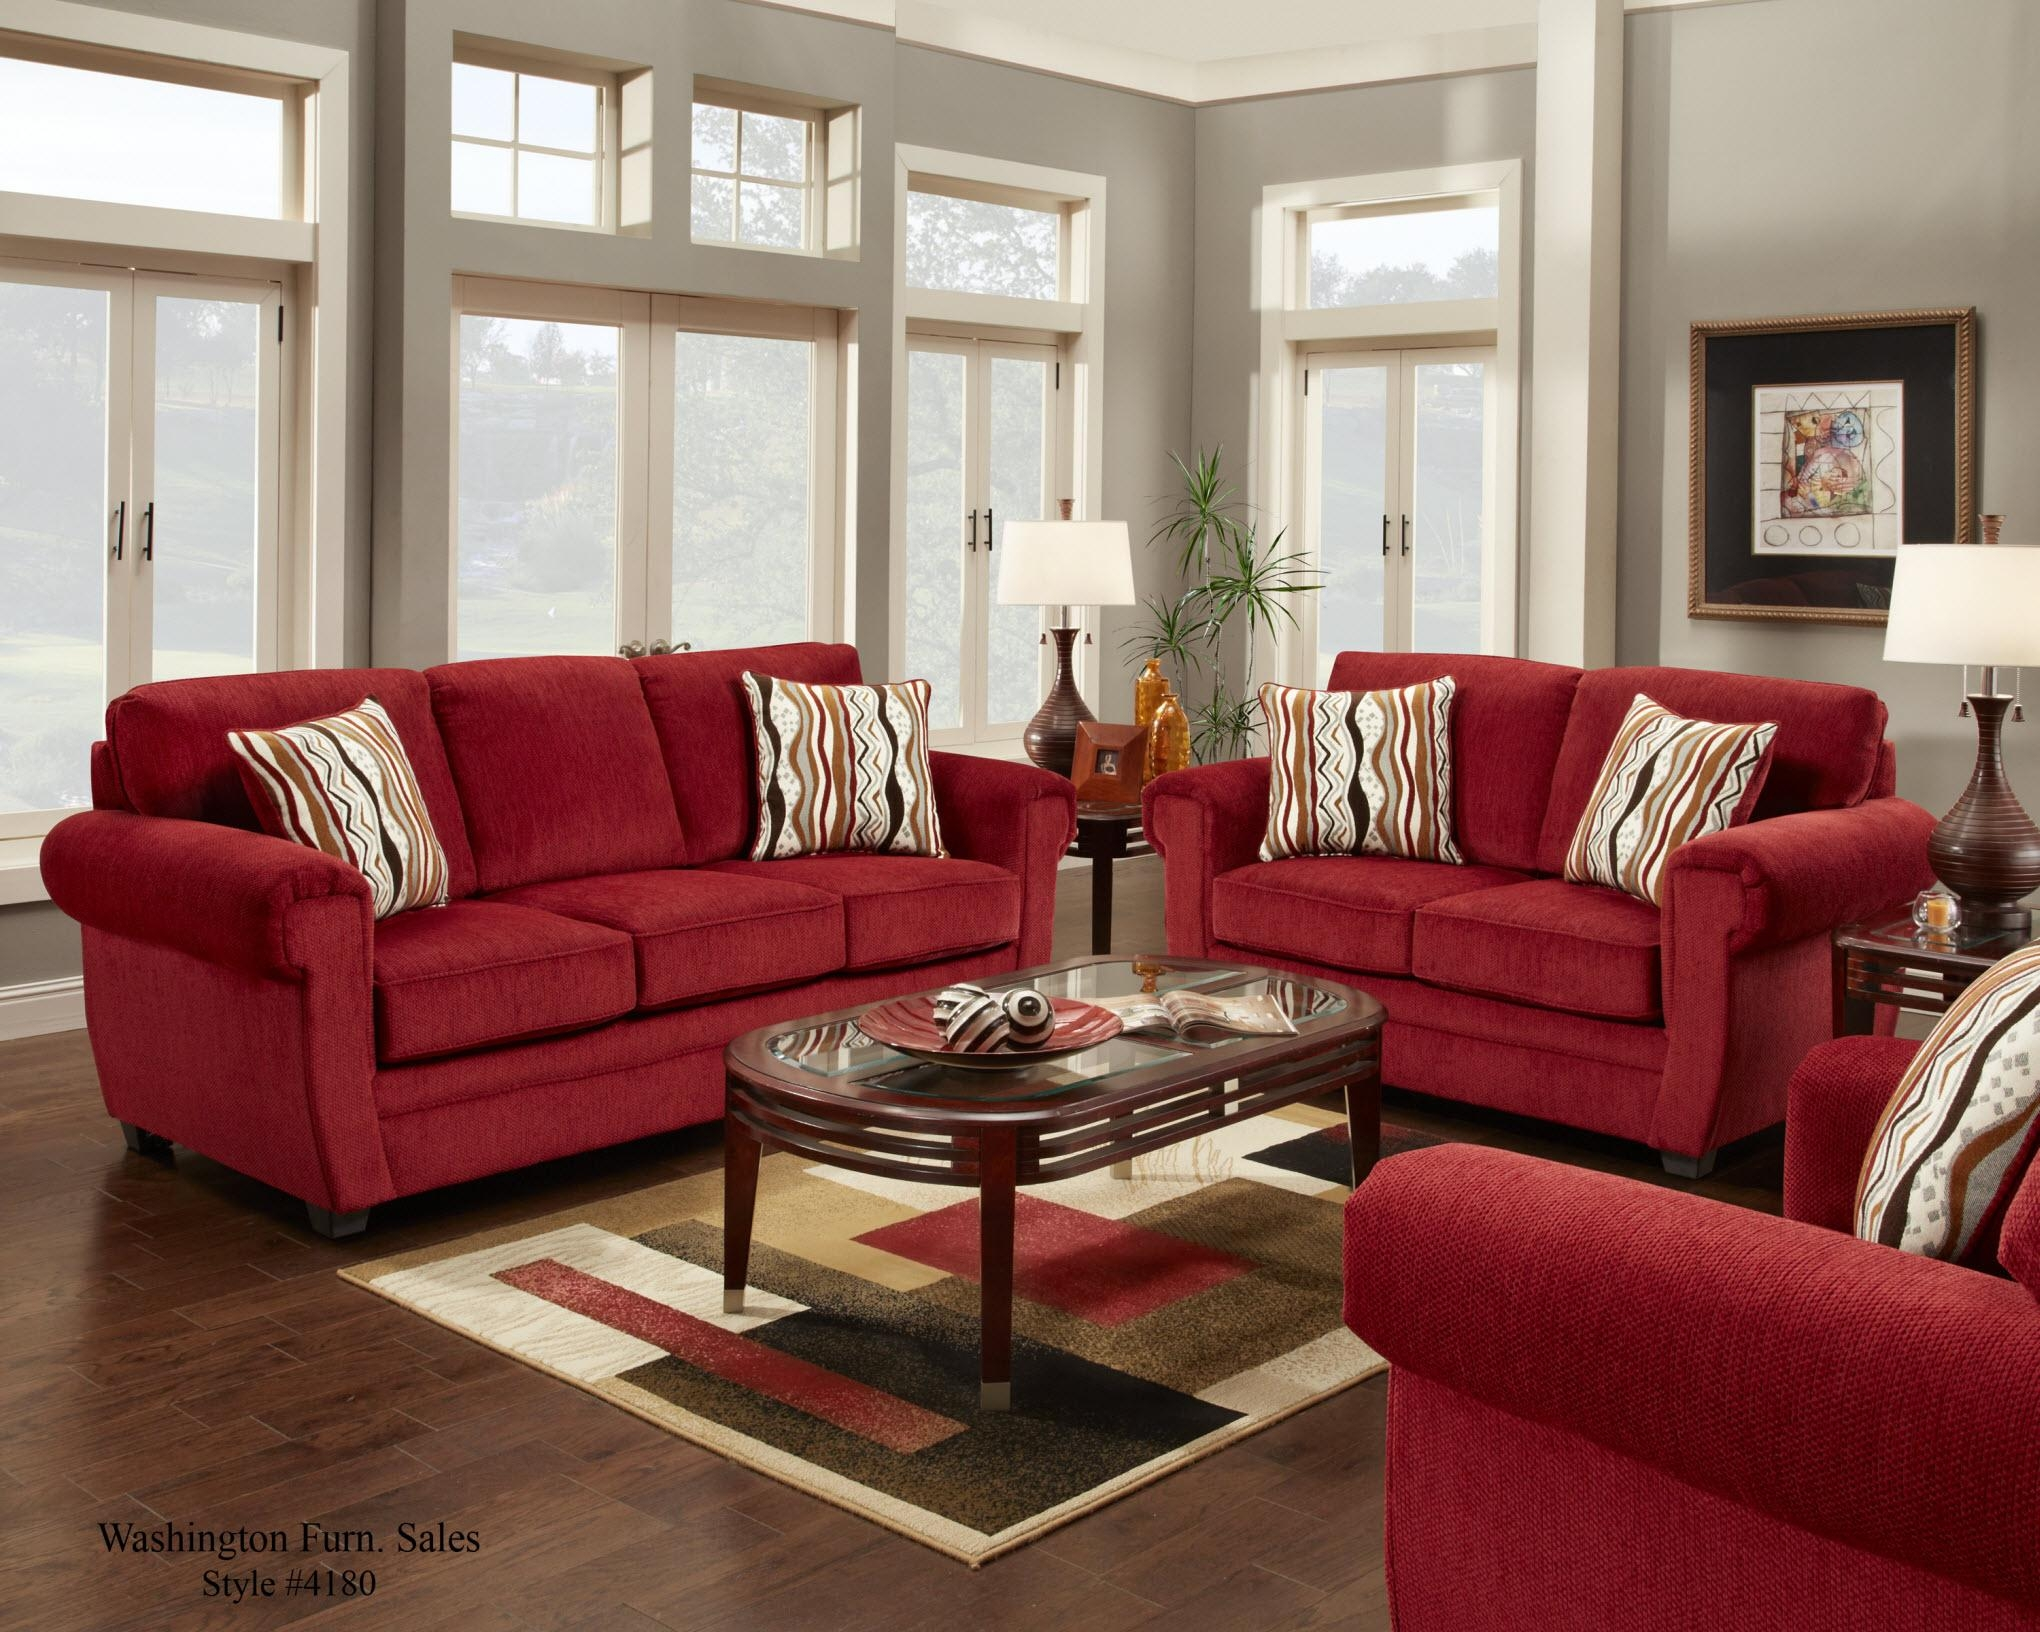 red leather sofa sets on sale queen size savannah futon bed frame only 20 top black and ideas